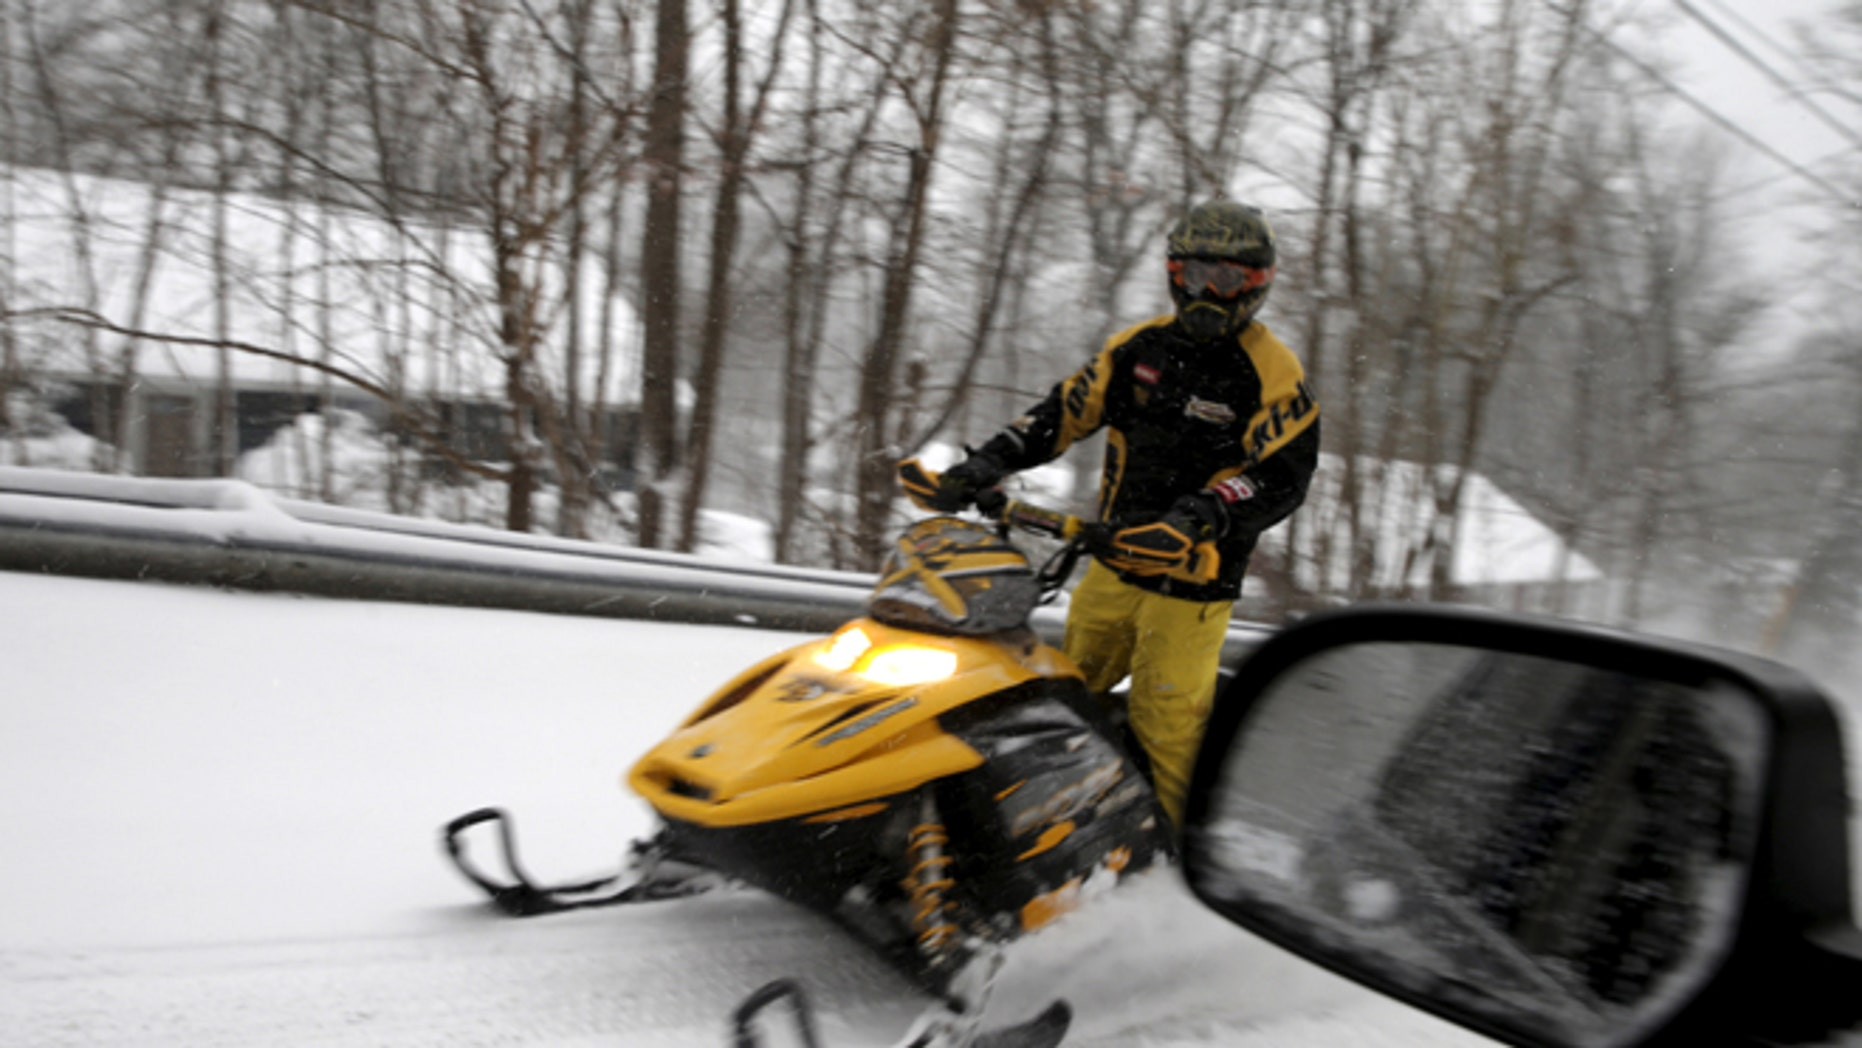 A man rides a snowmobile on a street in the village of Upper Nyack, New York, a northern suburb of New York City along the Hudson river January 23, 2016.